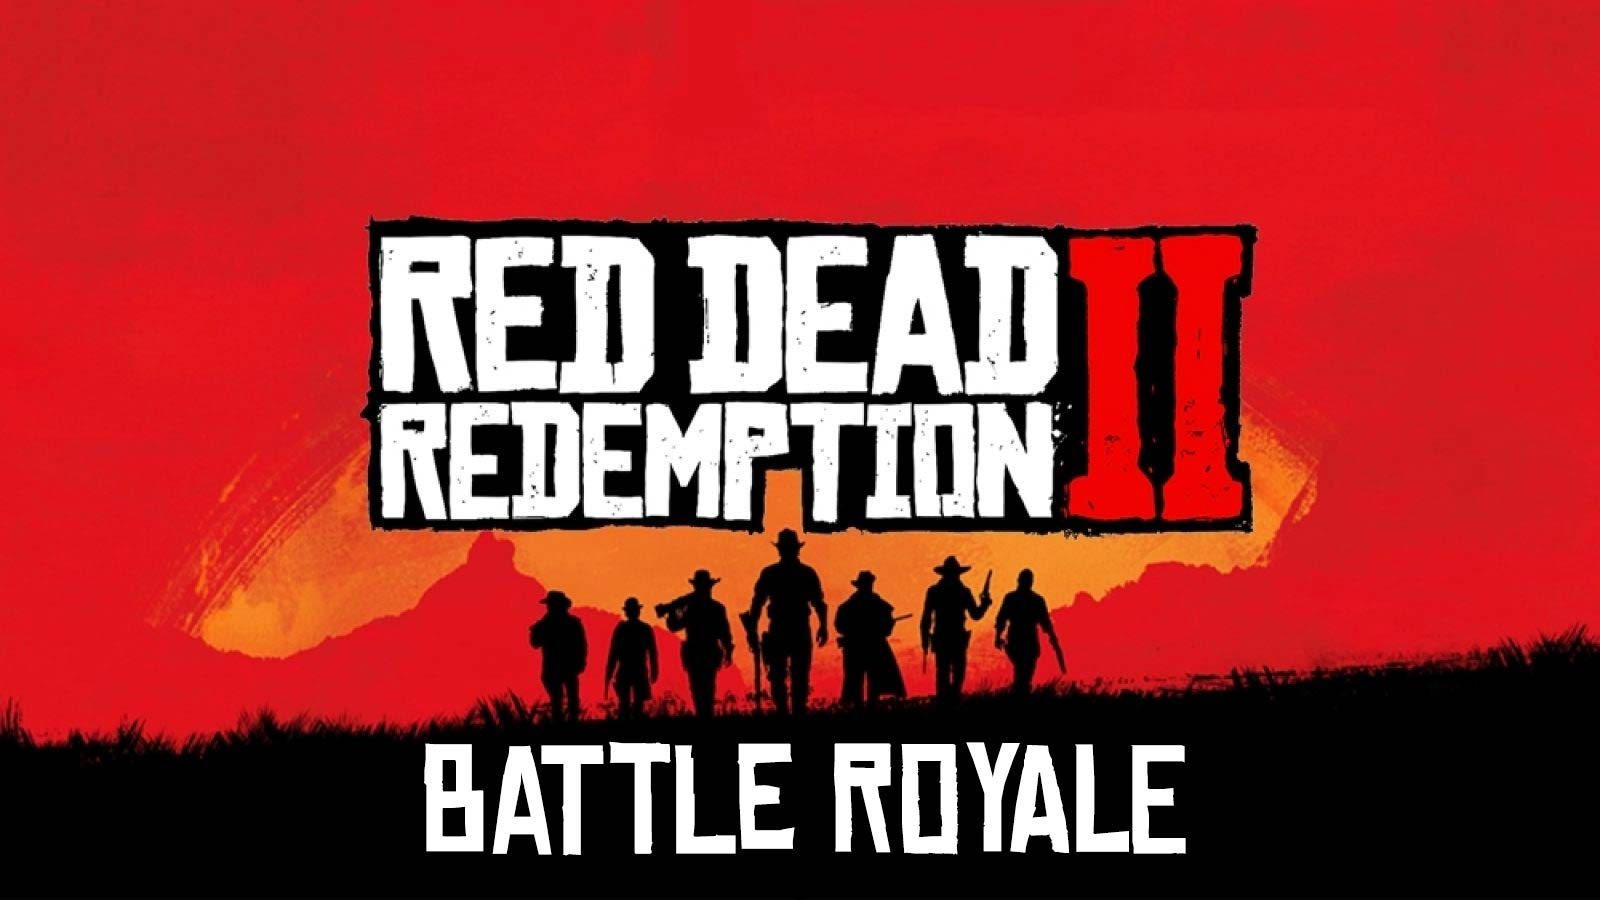 Red Dead Redemption 2٬ red dead Redemption 2 آنلاین٬ اخبار بازی red dead redemption 2٬ اخبار جدید بازی Red Dead Redemption 2٬ اطلاعات جدید بازی Red Dead Redemption 2٬ انتشار نسخه آنلاین red dead redemption 2٬ بازی red dead 2٬ بازی Red Dead Redemption 2٬ بازی Red Dead Redemption 2 برای Xbox One٬ بازی Red Dead Redemption برای PS4٬ مد Battle Royale برای Red Dead Redemption 2٬ مد Make it count برای Red dead Redemption 2٬ نسخه آنلاین Red Dead Redemption 2